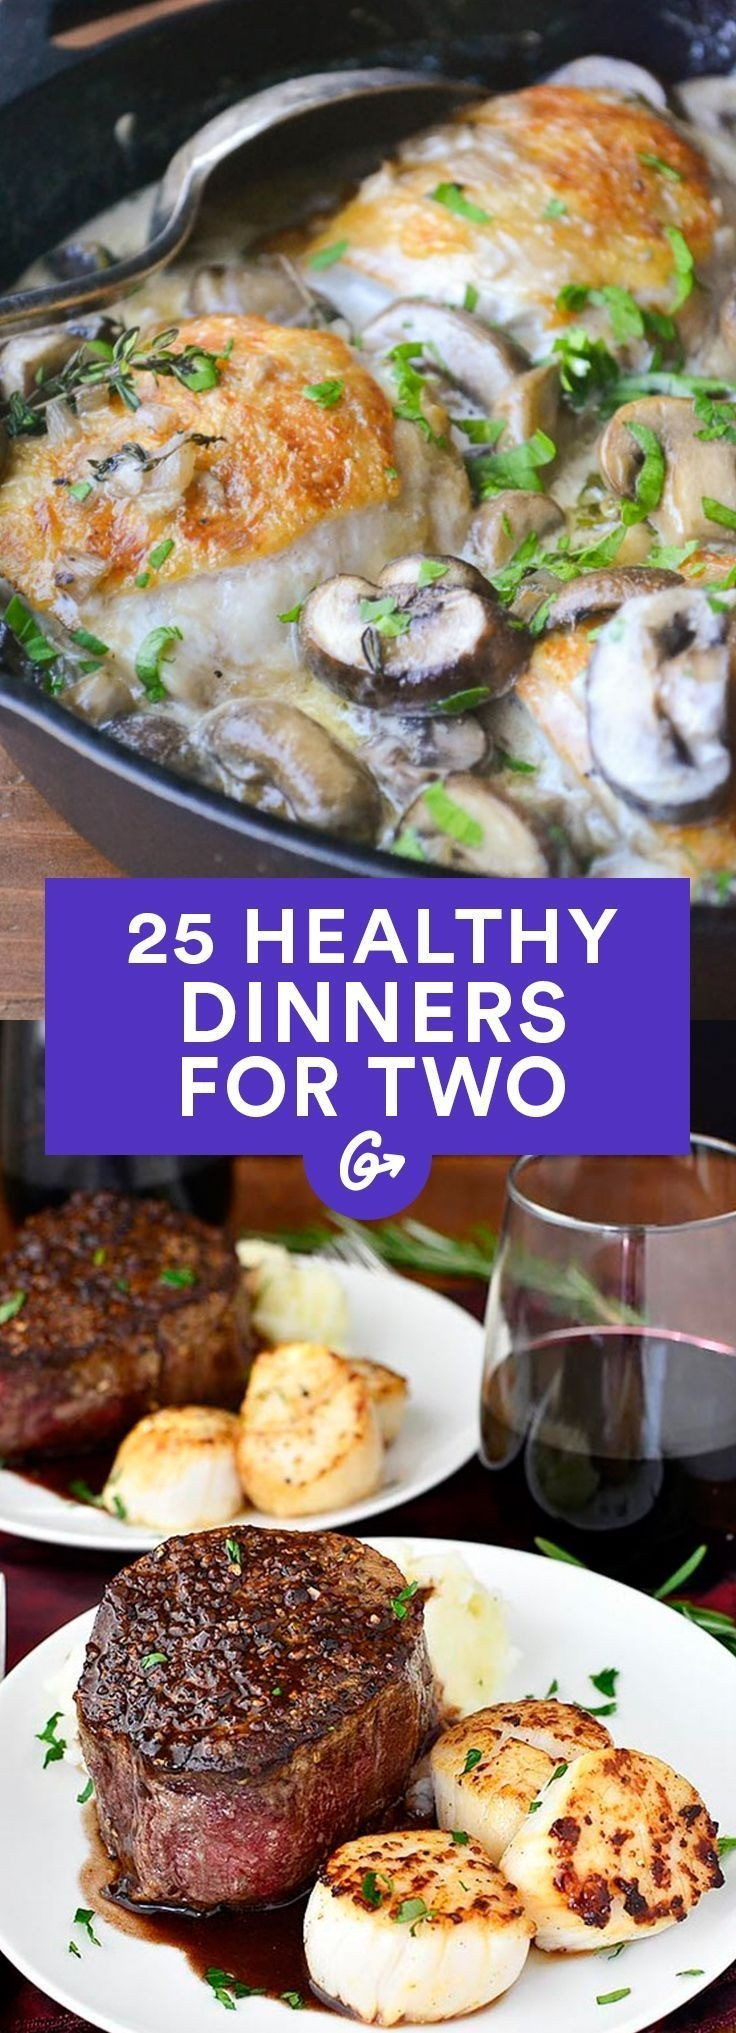 Best Healthy Dinners  Light Dinner Ideas For TwoWritings and Papers